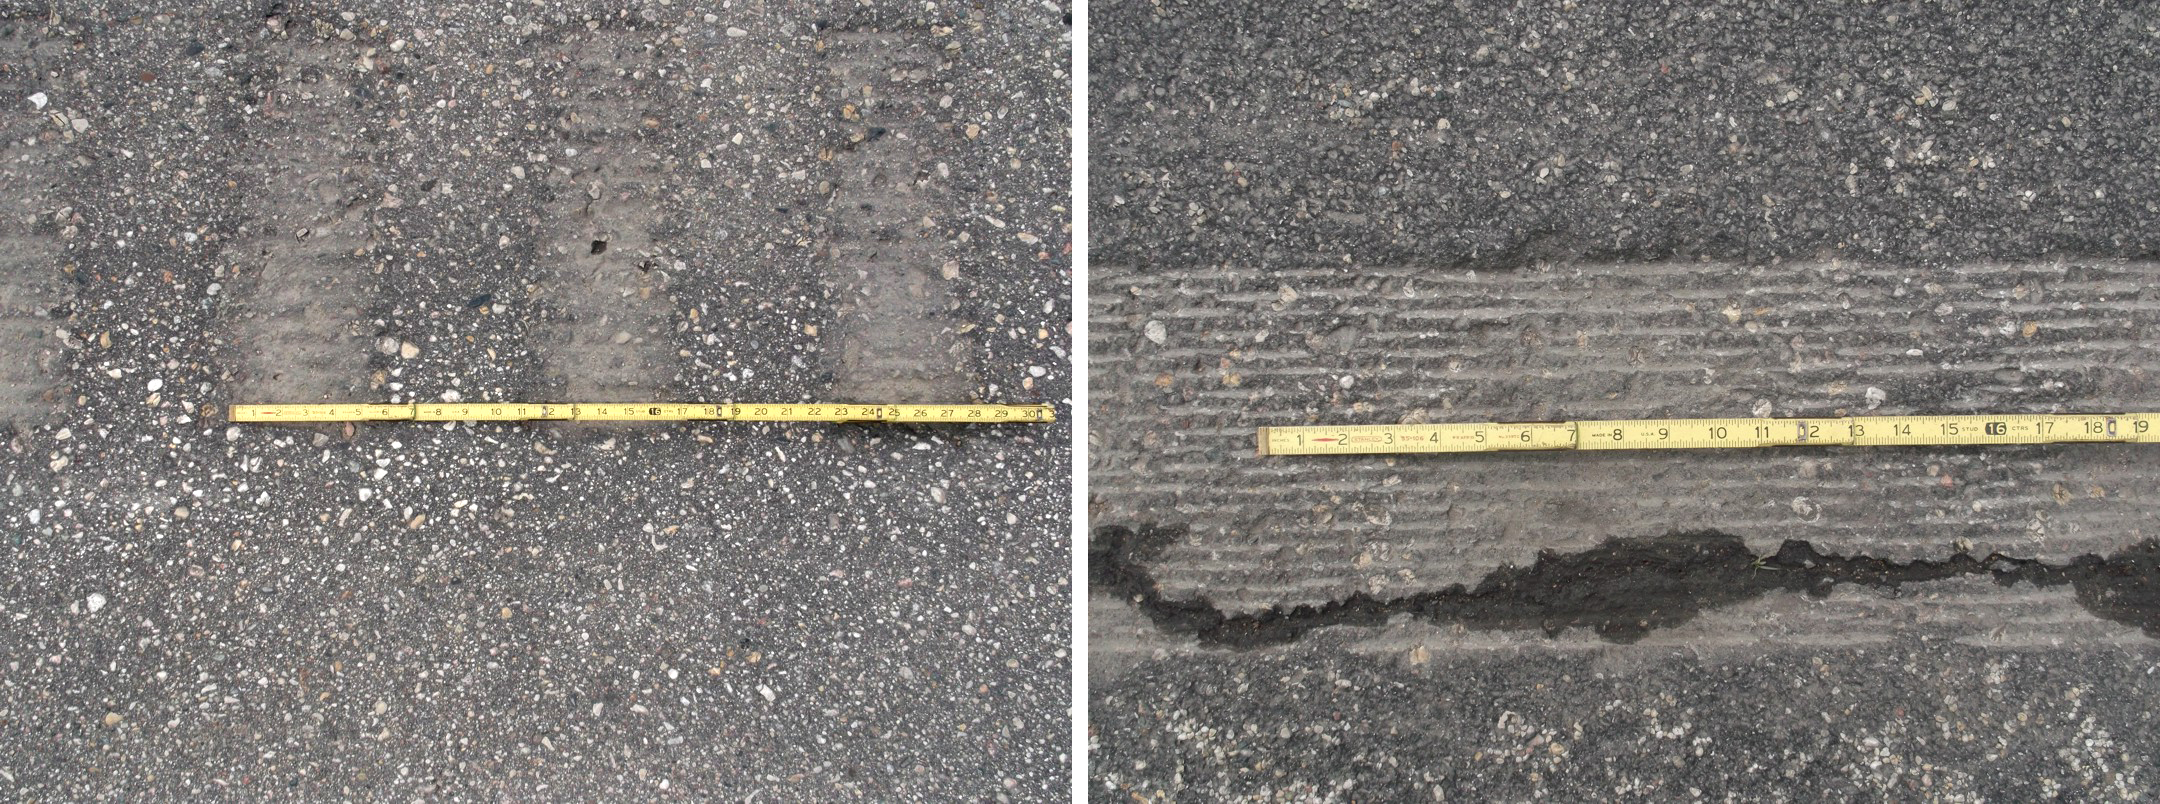 The Minnesota rumble strip, left, and California rumble strip, right.